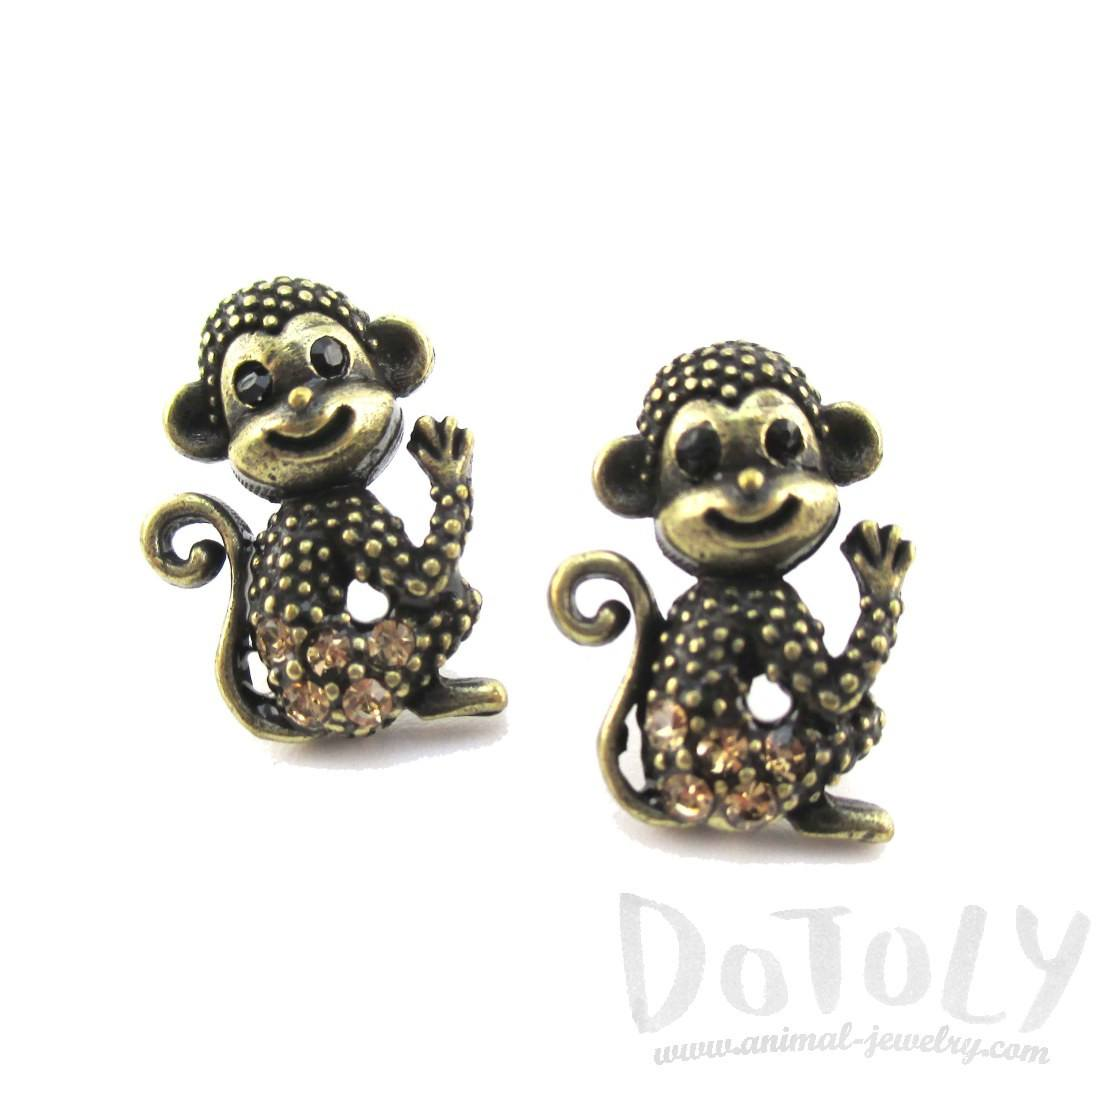 Baby Monkey Shaped Rhinestone Stud Earrings in Brass